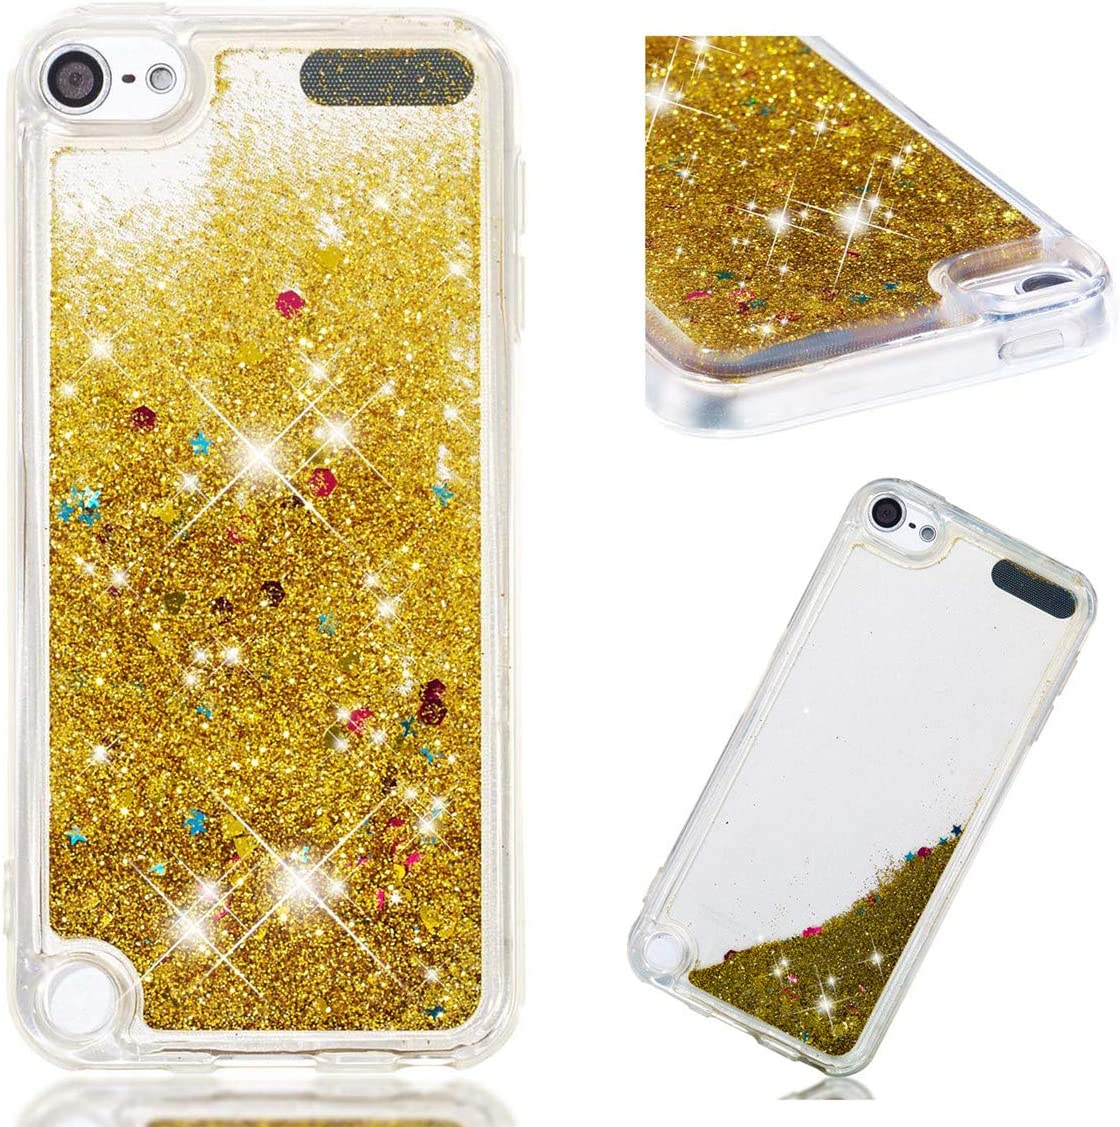 iPod Touch 7 Case, iPod Touch 6 Case, iPod Touch 5 Case, Gift_Source Bling Glitter Sparkle Liquid Quicksand Flowing Soft Cover Clear TPU Gel Rubber Case for iPod Touch 5th/6th/7th Generation [Gold]